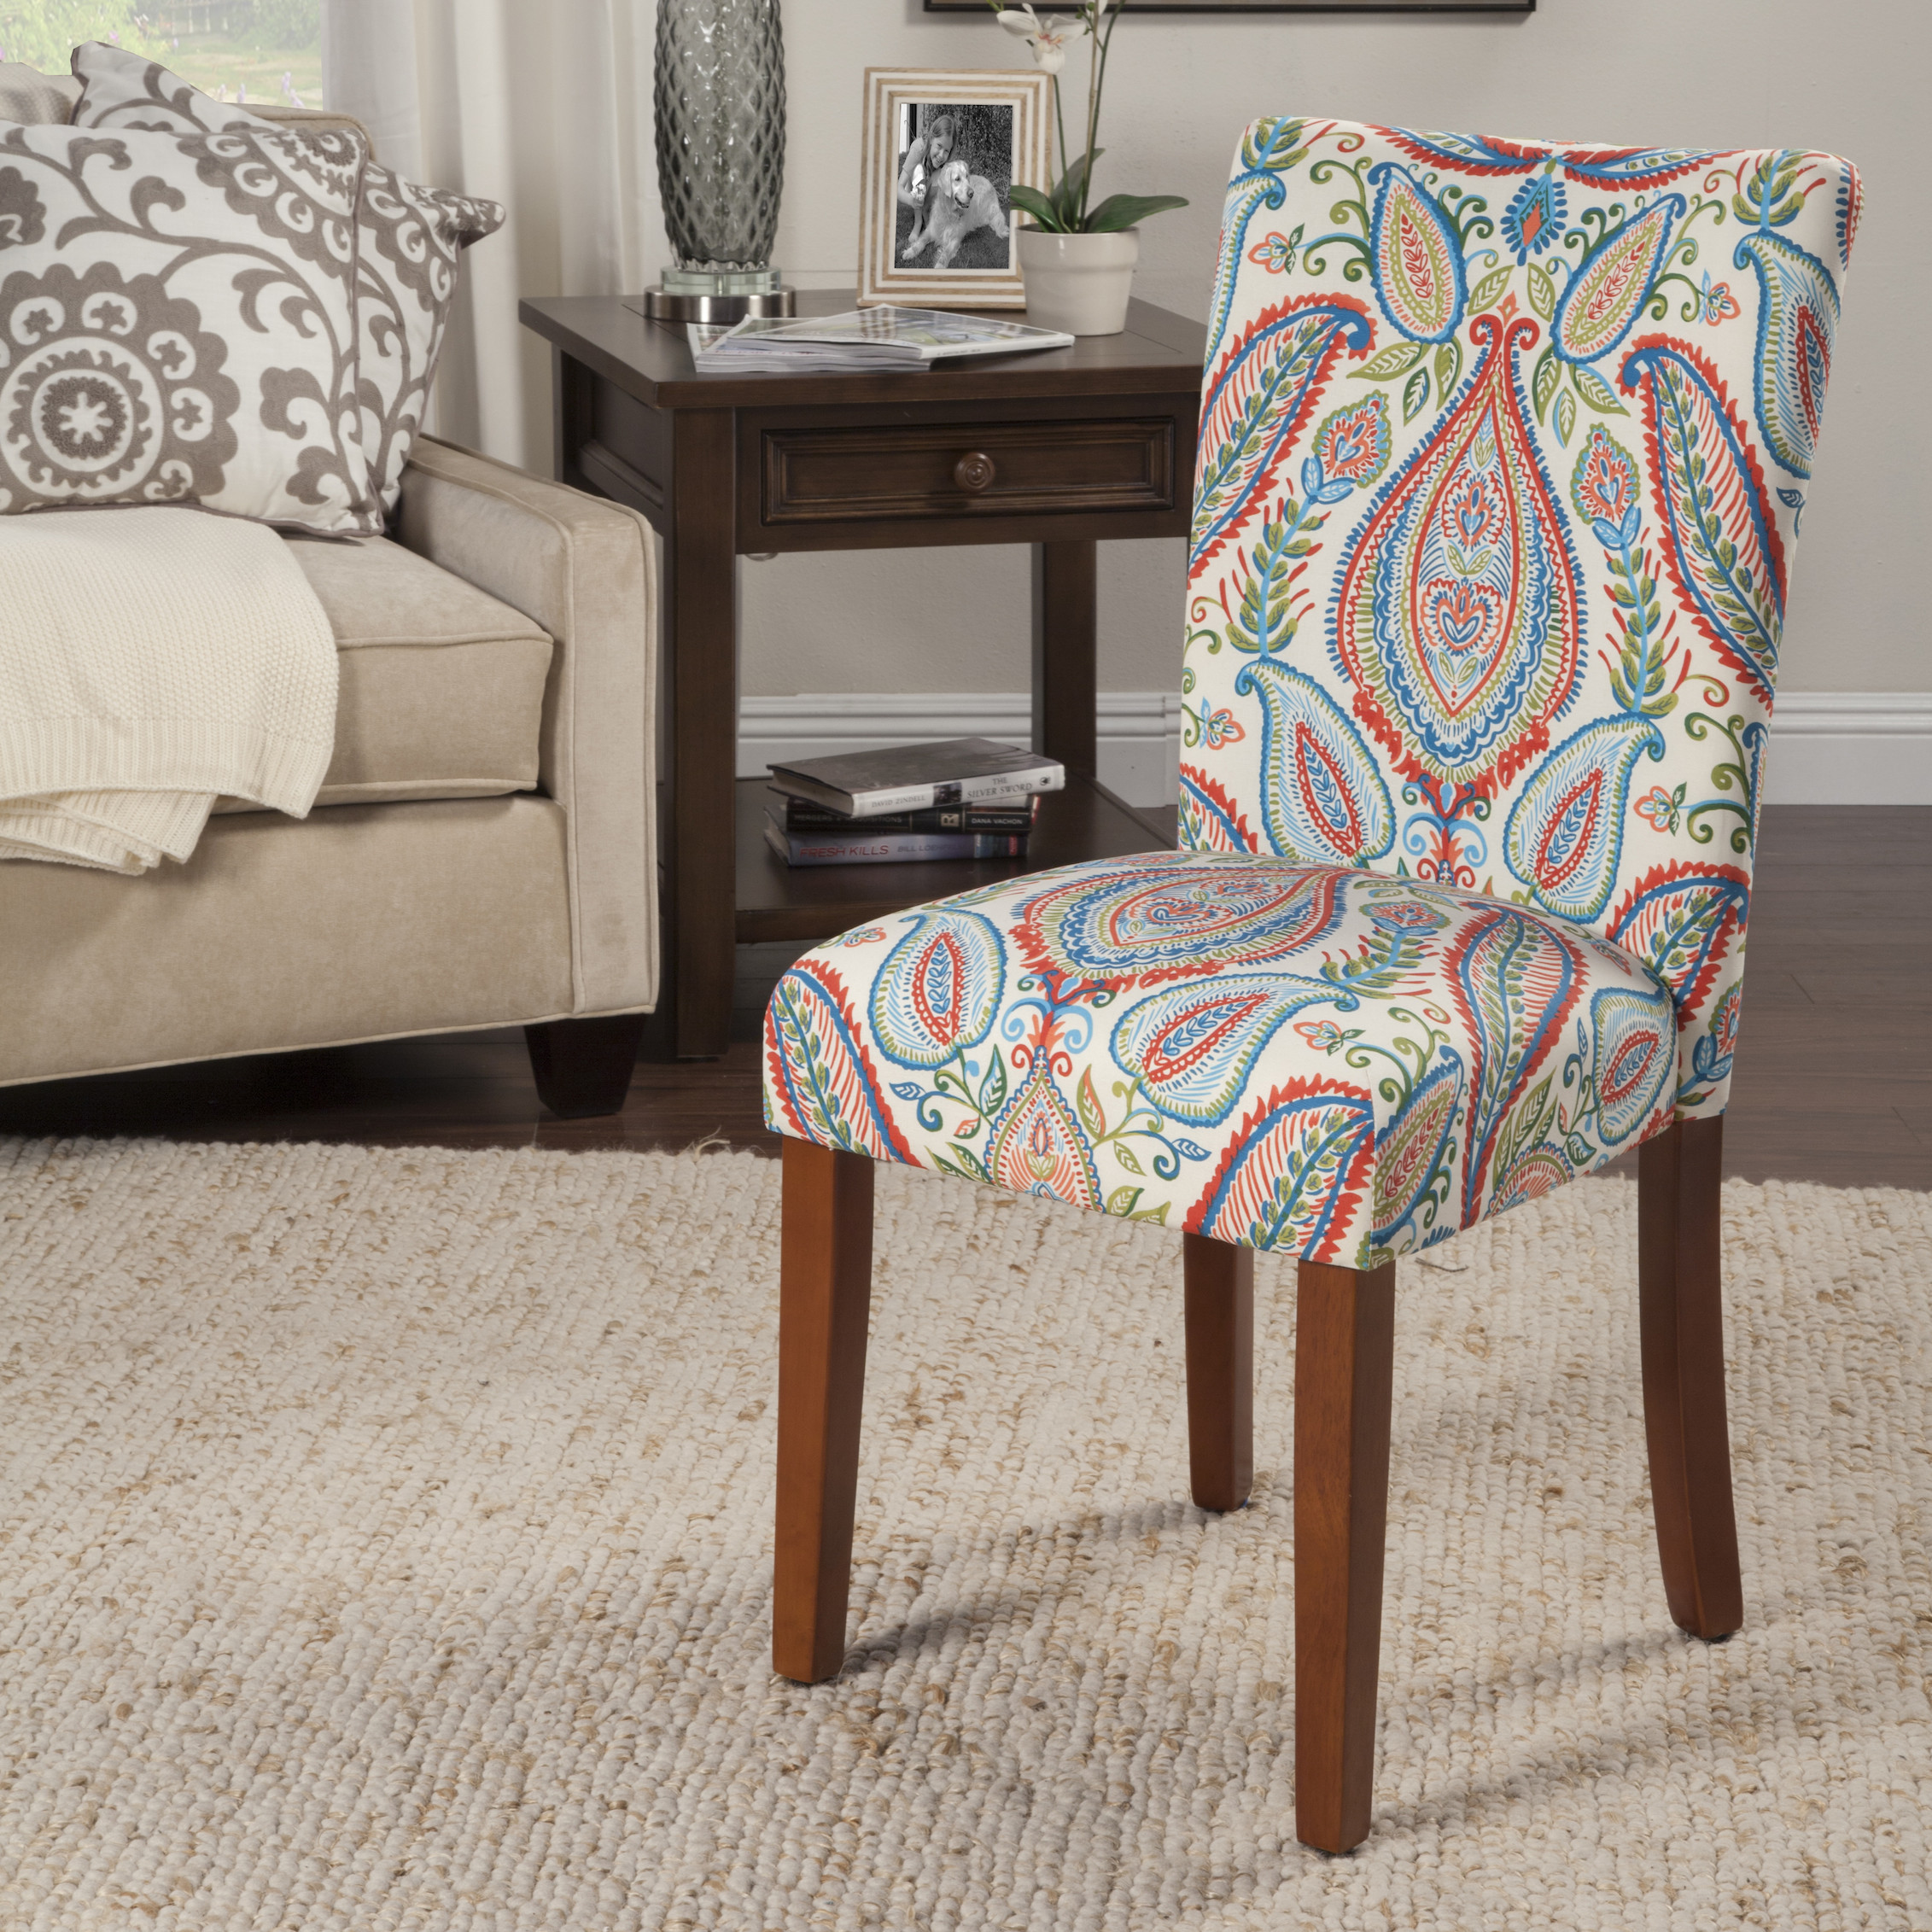 best paisley accent chair design ideas home furniture chairs and table handmade coffee bench seat ikea acrylic round night tables distressed red garden light mango wood quality